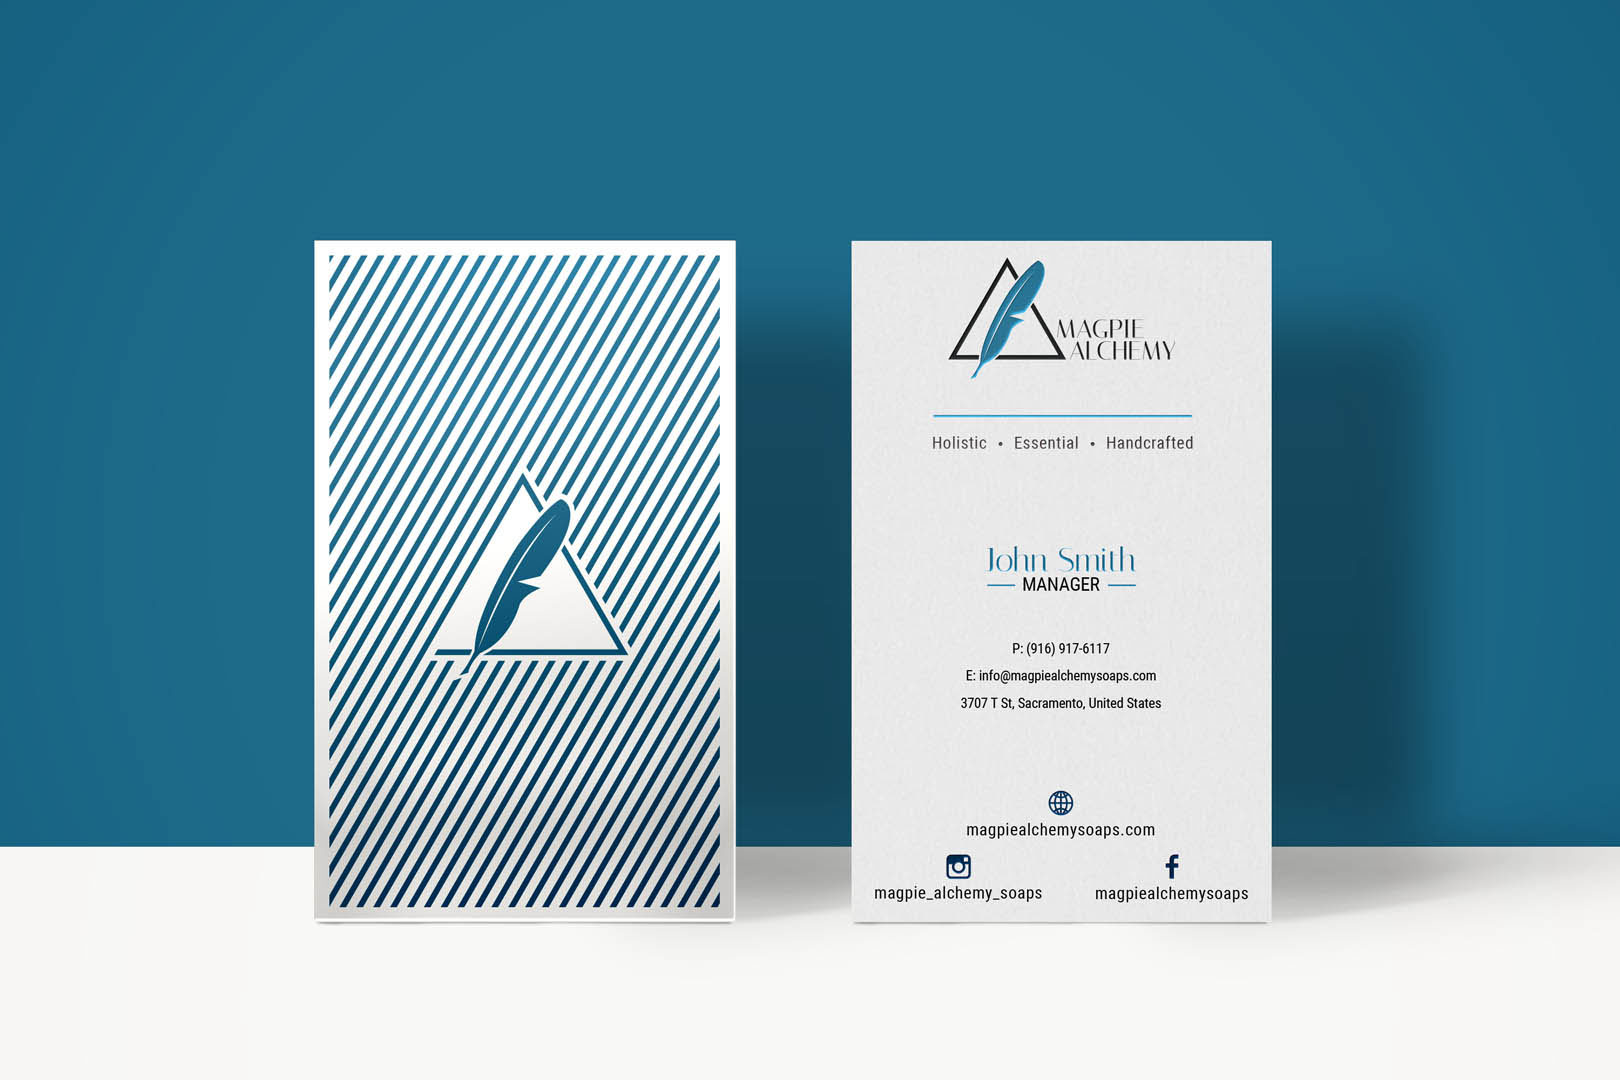 Magpie_Alchemy_Business_Card_mock__0000_Magpie_Alchemy_Business_Card_mock_v6